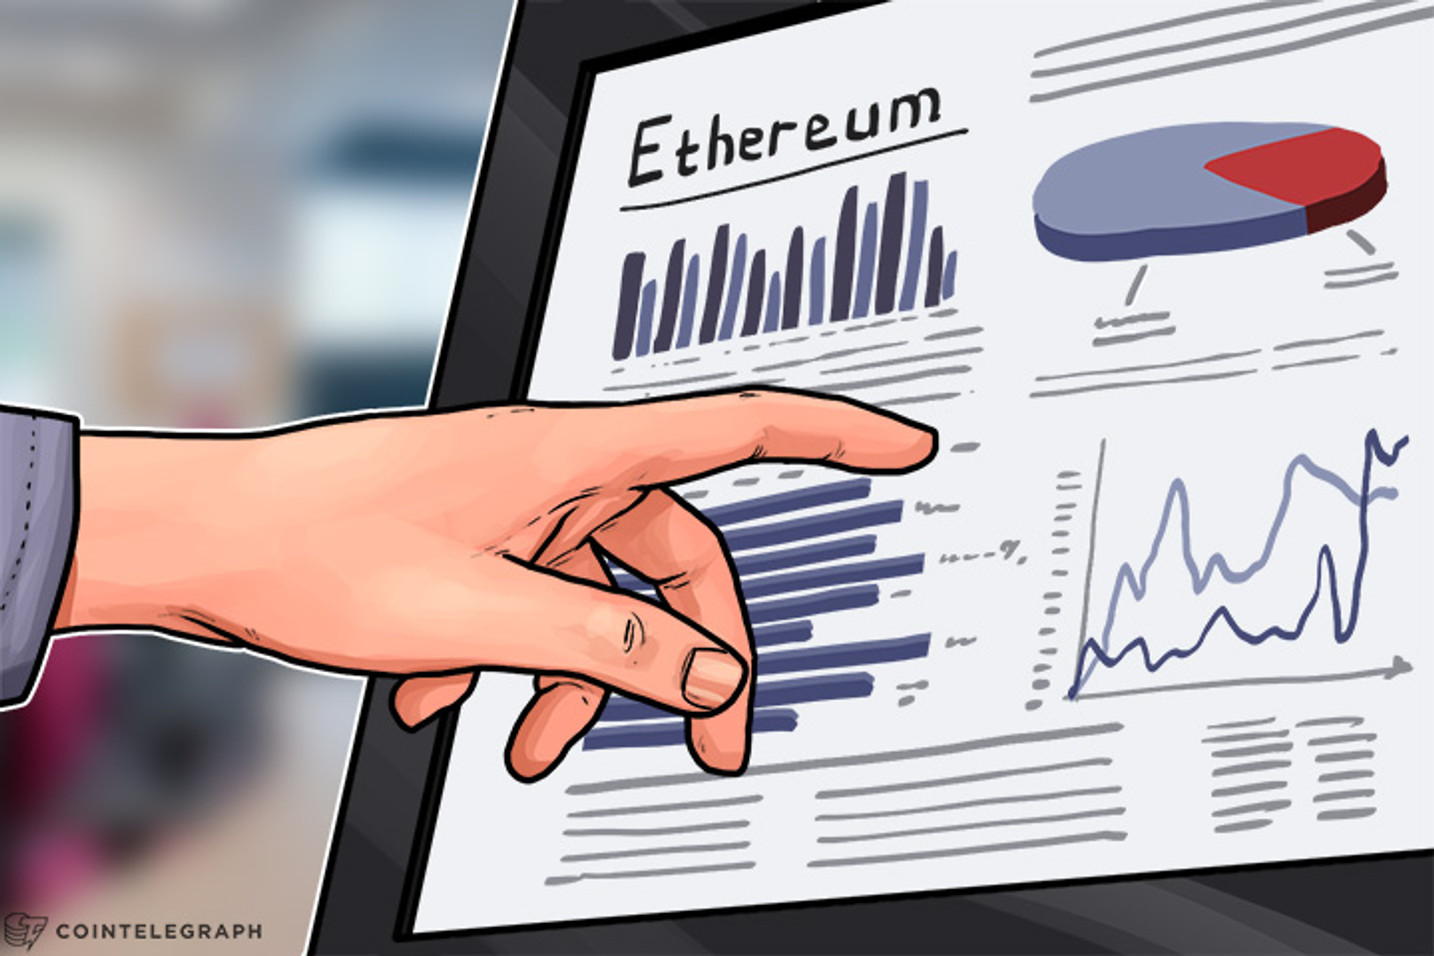 Ethereum Weekly Price Analysis: July 30 - August 6